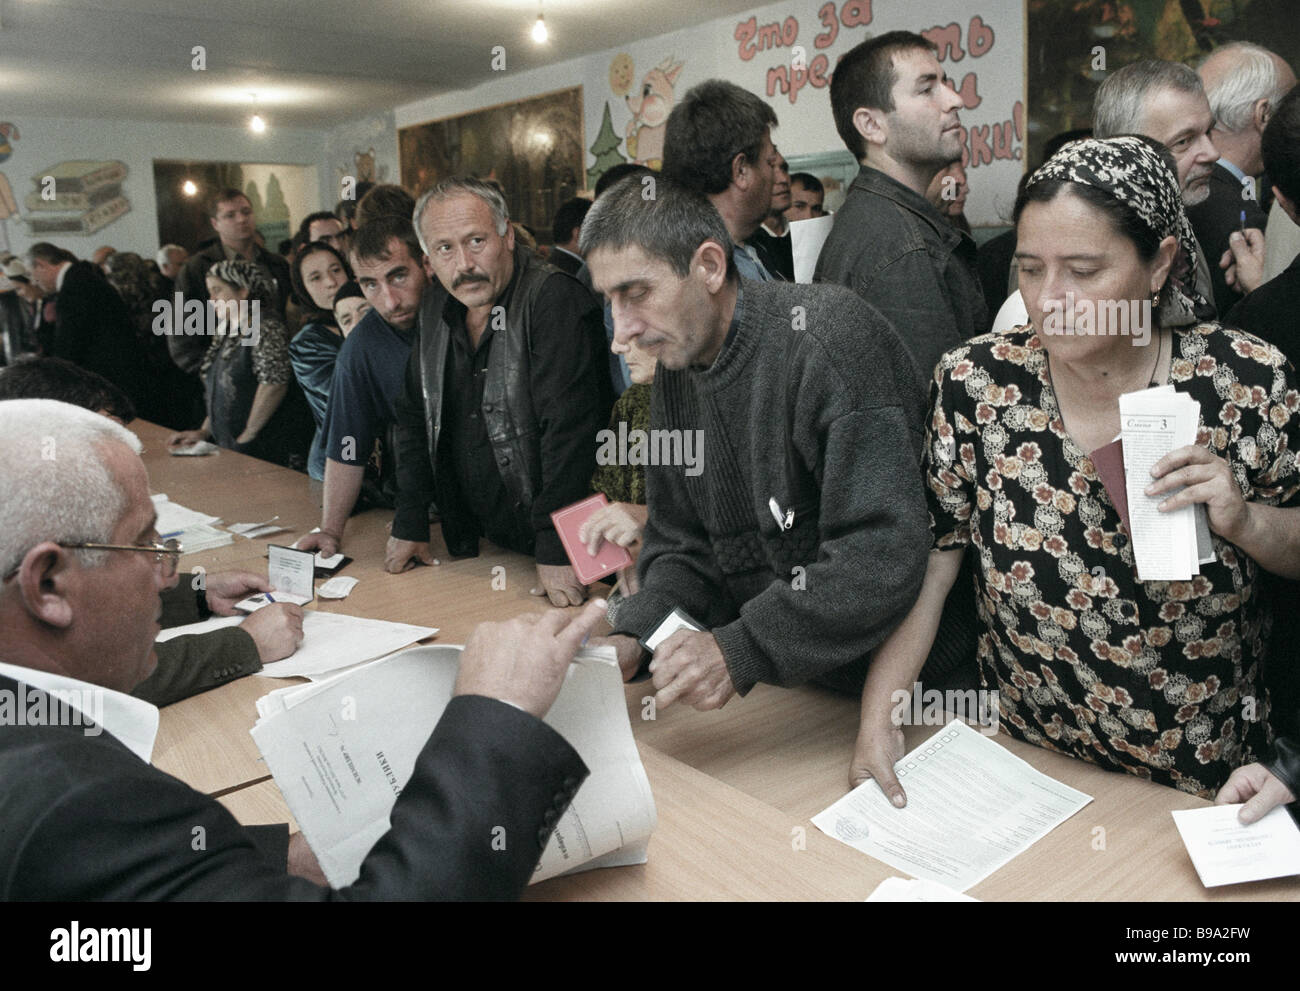 Villagers of Tsentoroy get their voting ballots during the Chechen Republic presidential election campaign - Stock Image